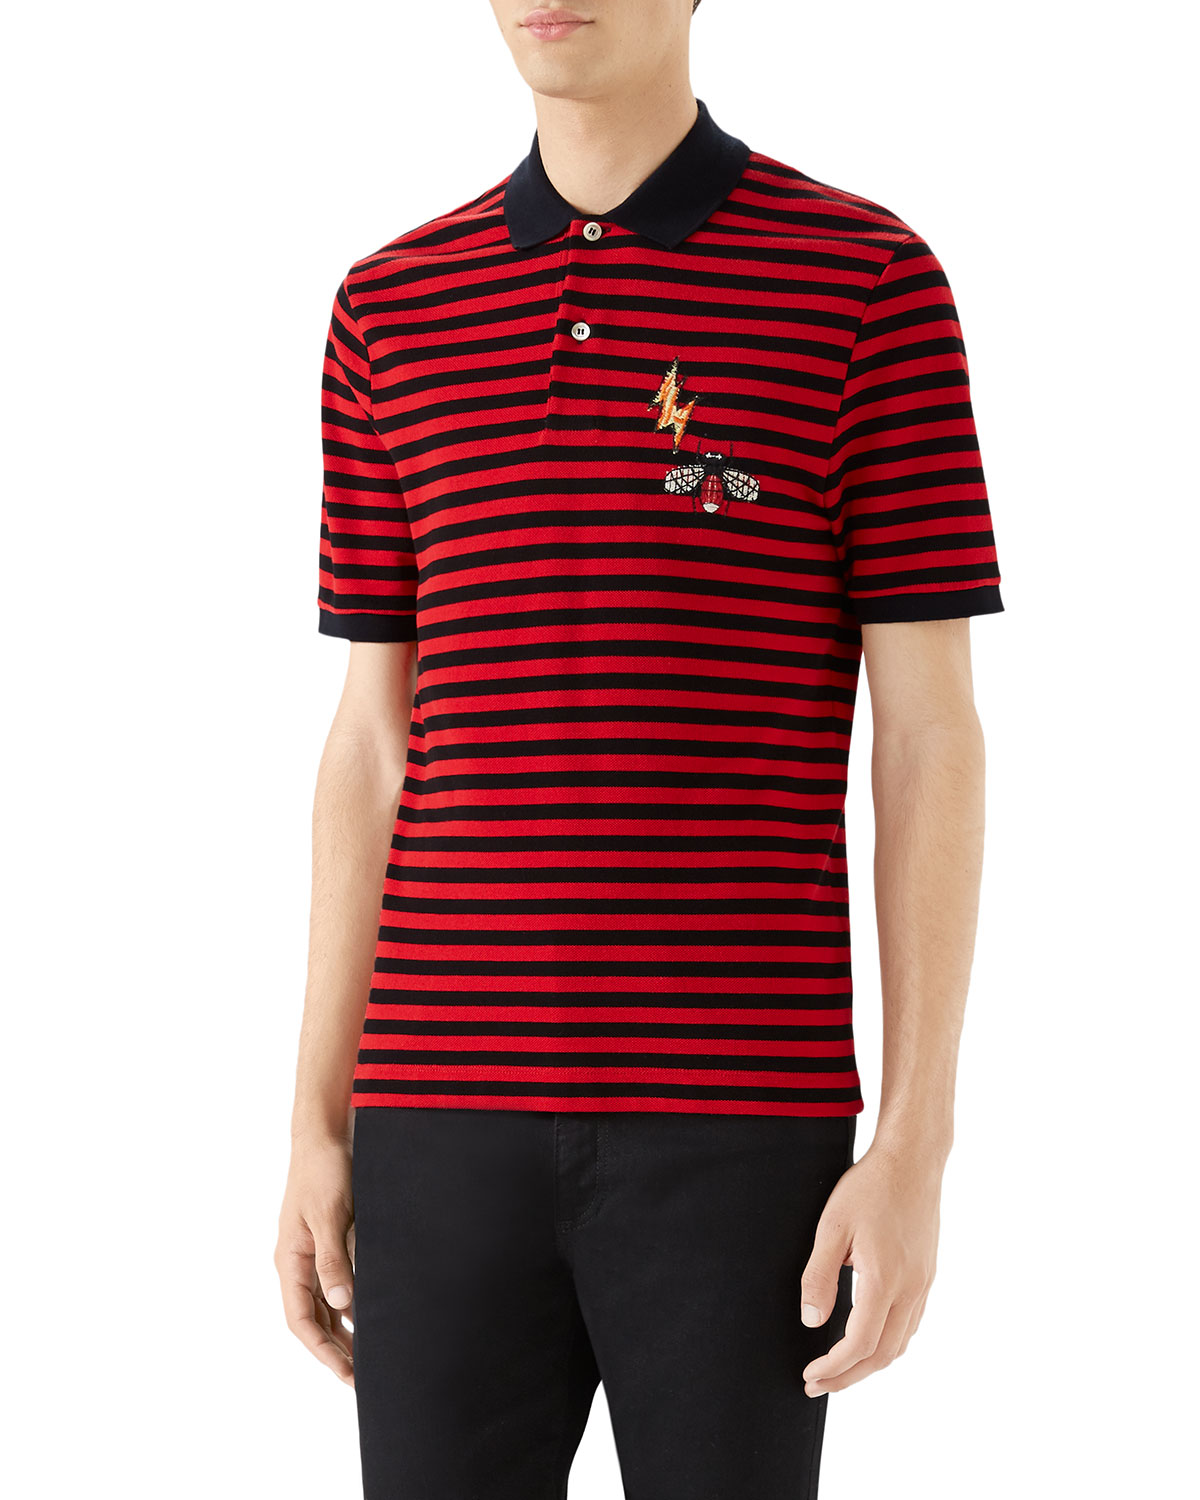 5fbc9d8ef60 Gucci Men s Striped Pique Polo Shirt with Patches